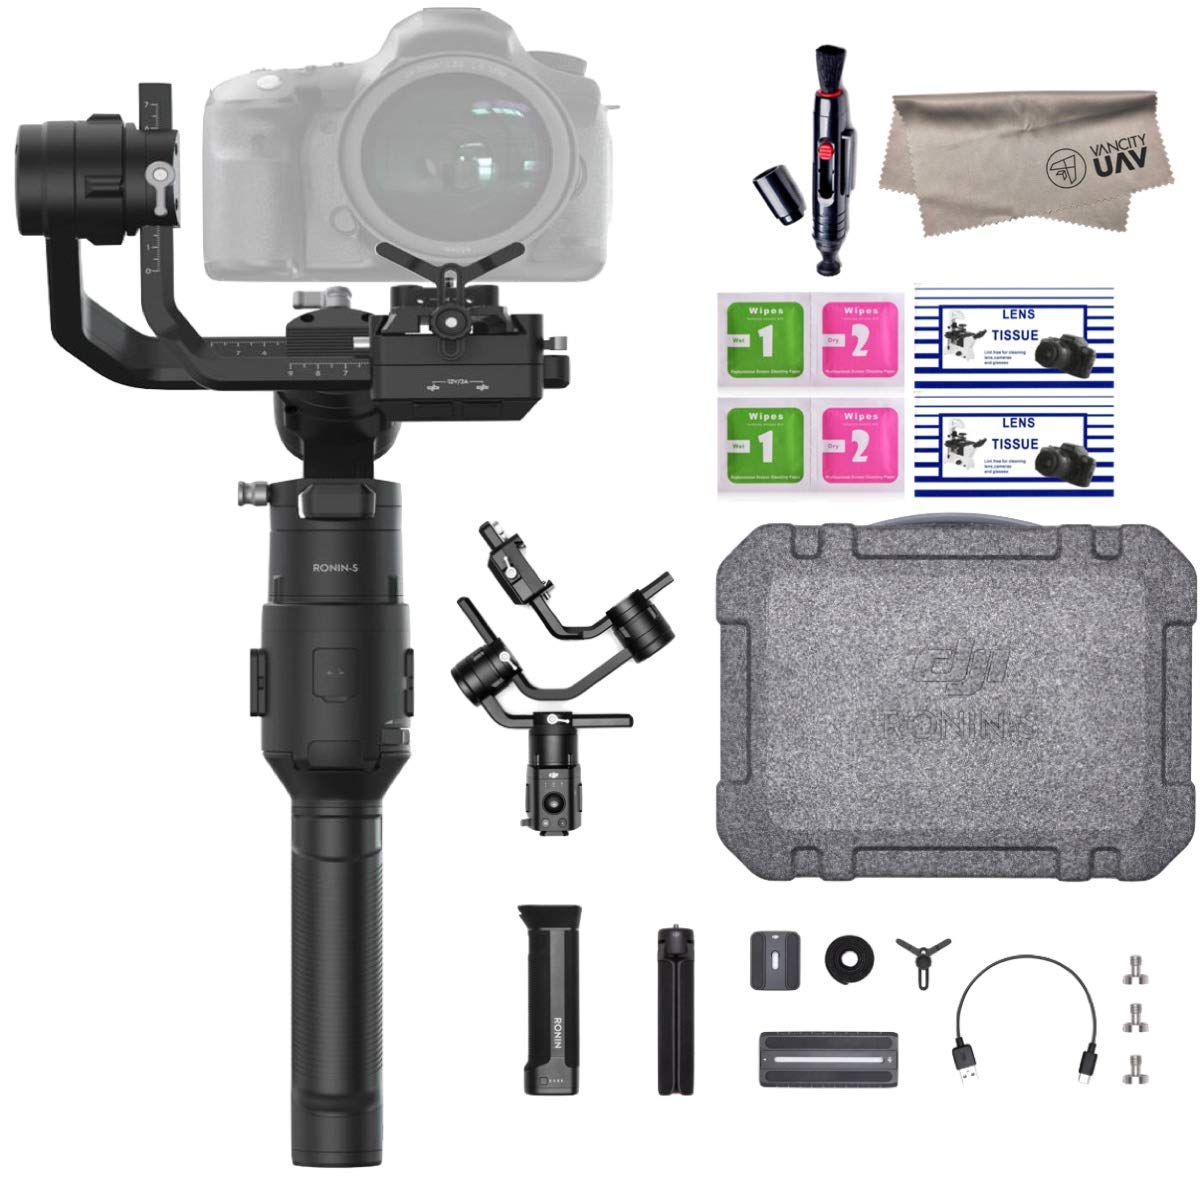 2019 DJI Ronin-S Essentials Kit 3-Axis Gimbal Stabilizer for Mirrorless and DSLR Cameras, Tripod, Gimbal Hook and Loop Strap, 1 Year Limited Warranty, Black(CP.RN.00000033.01) by DJI